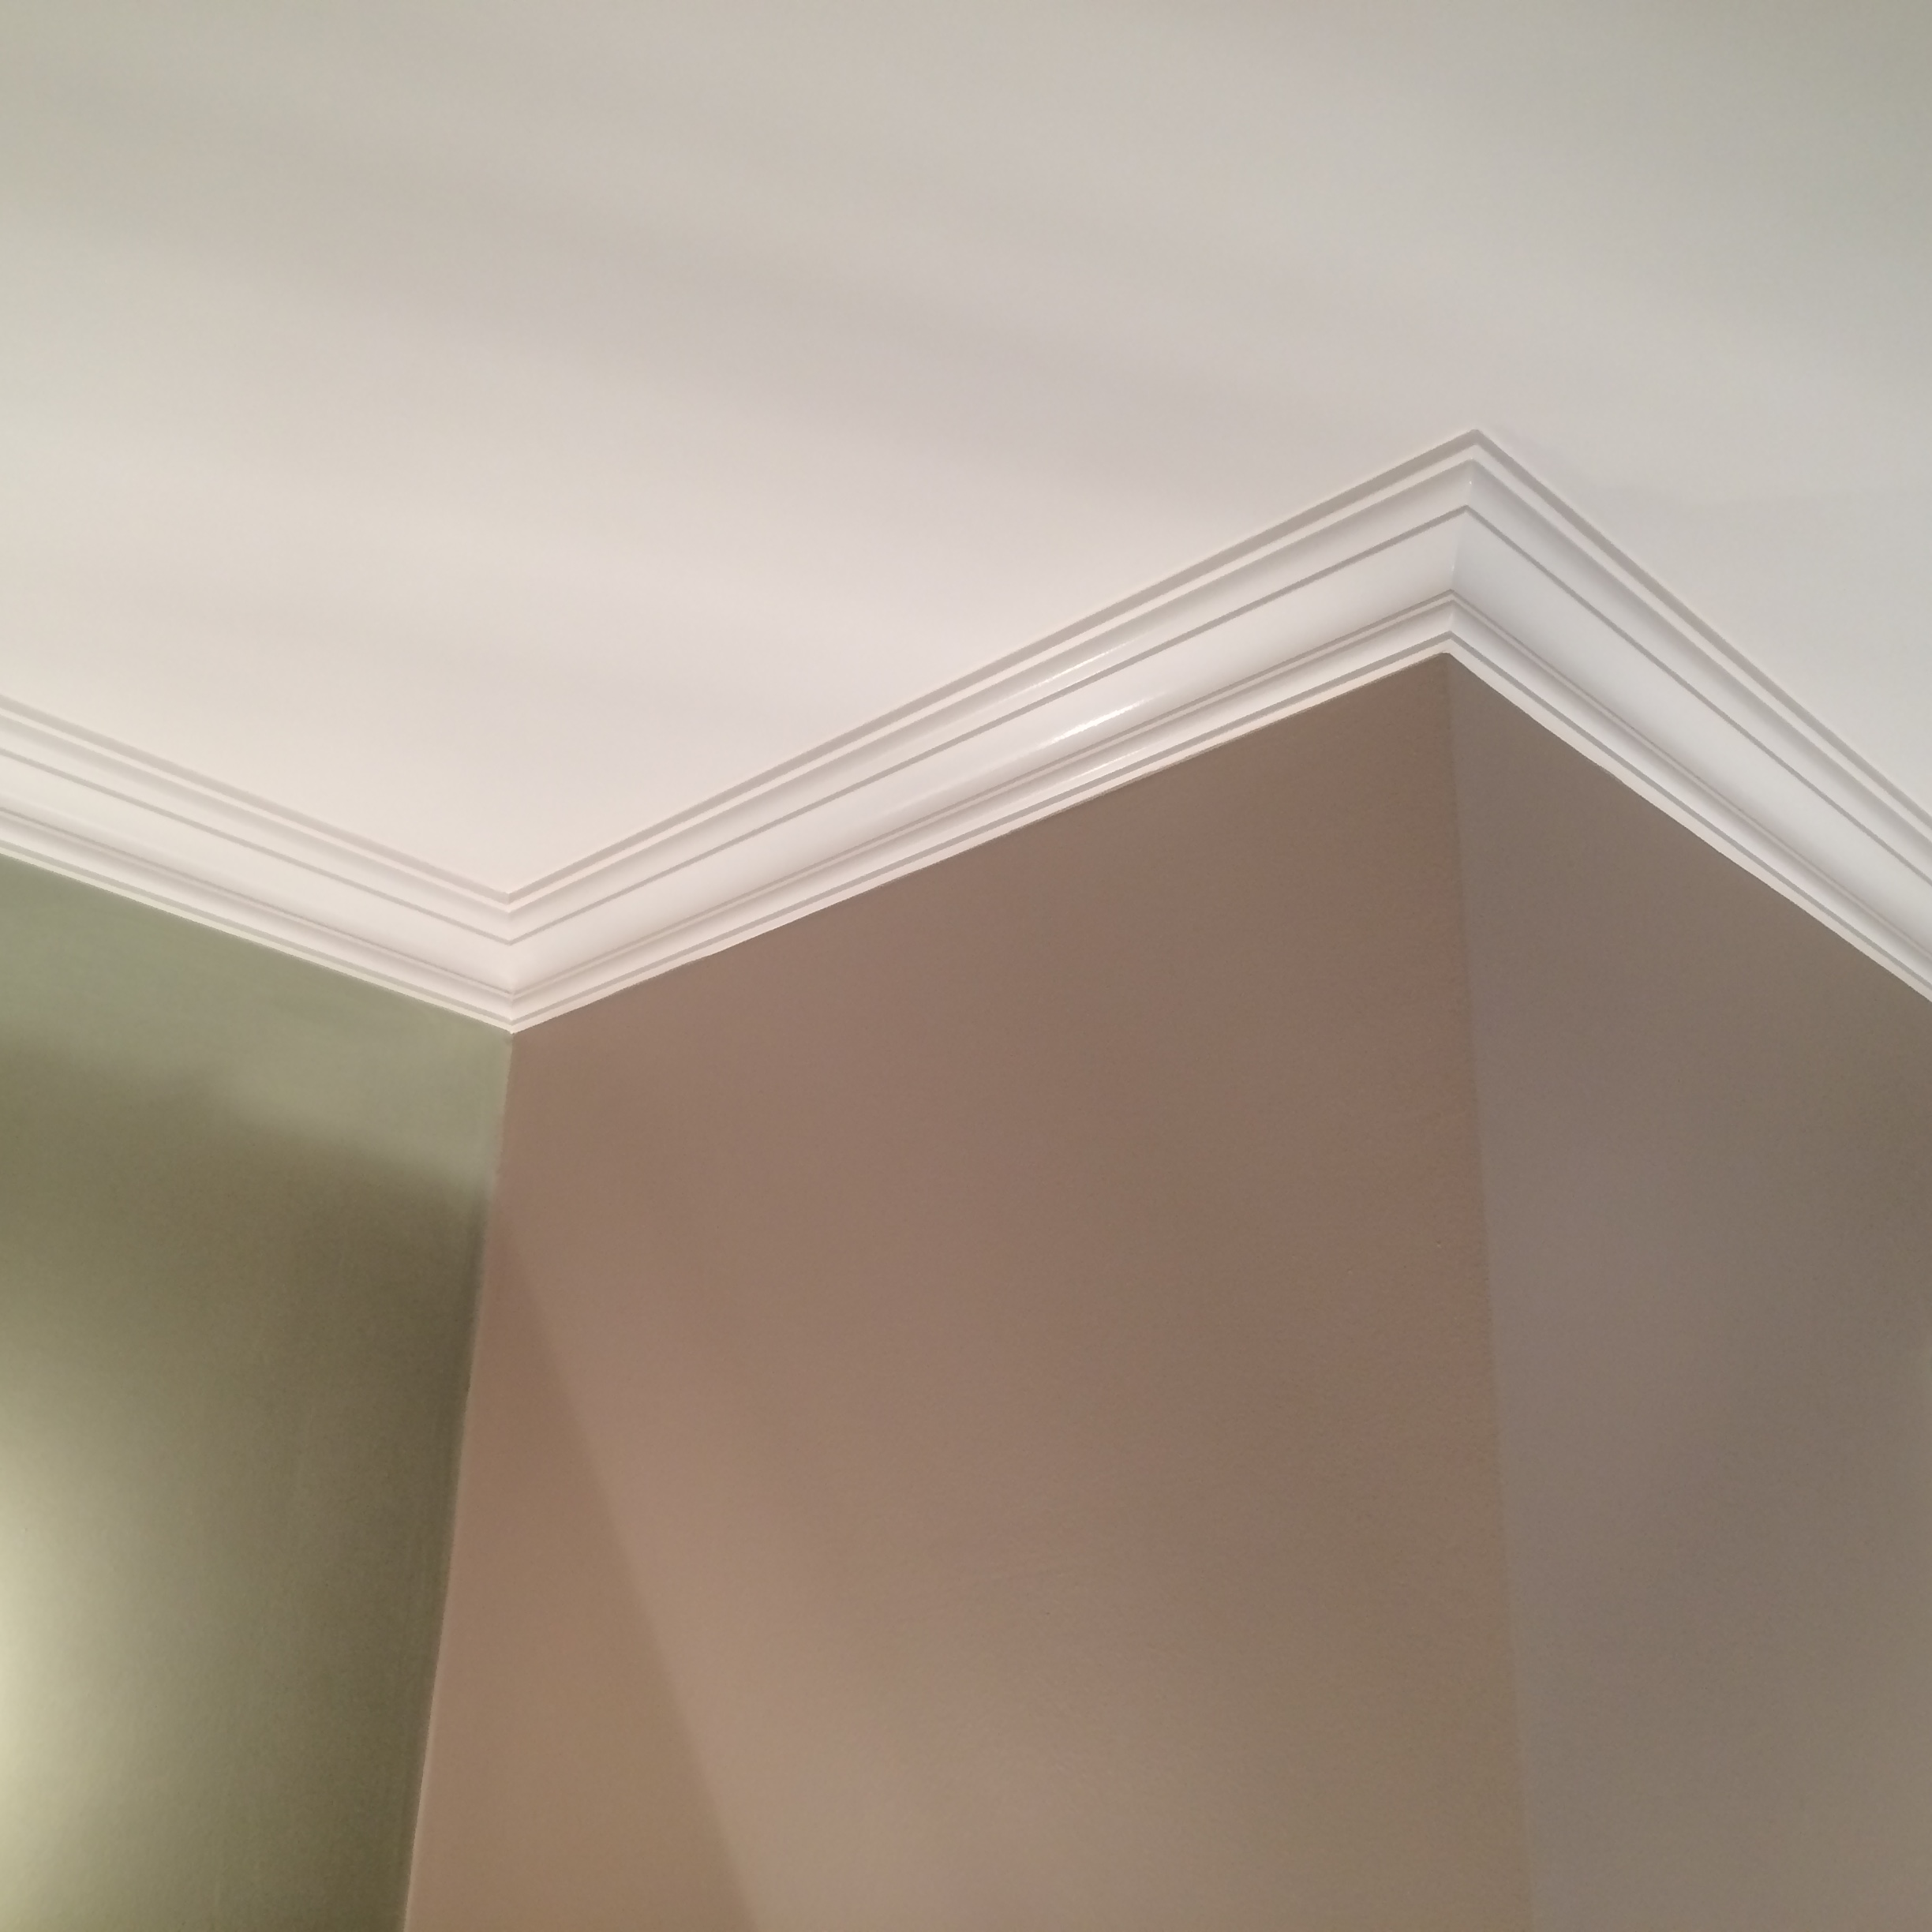 Classic Painting & Home Improvements Inc. image 1